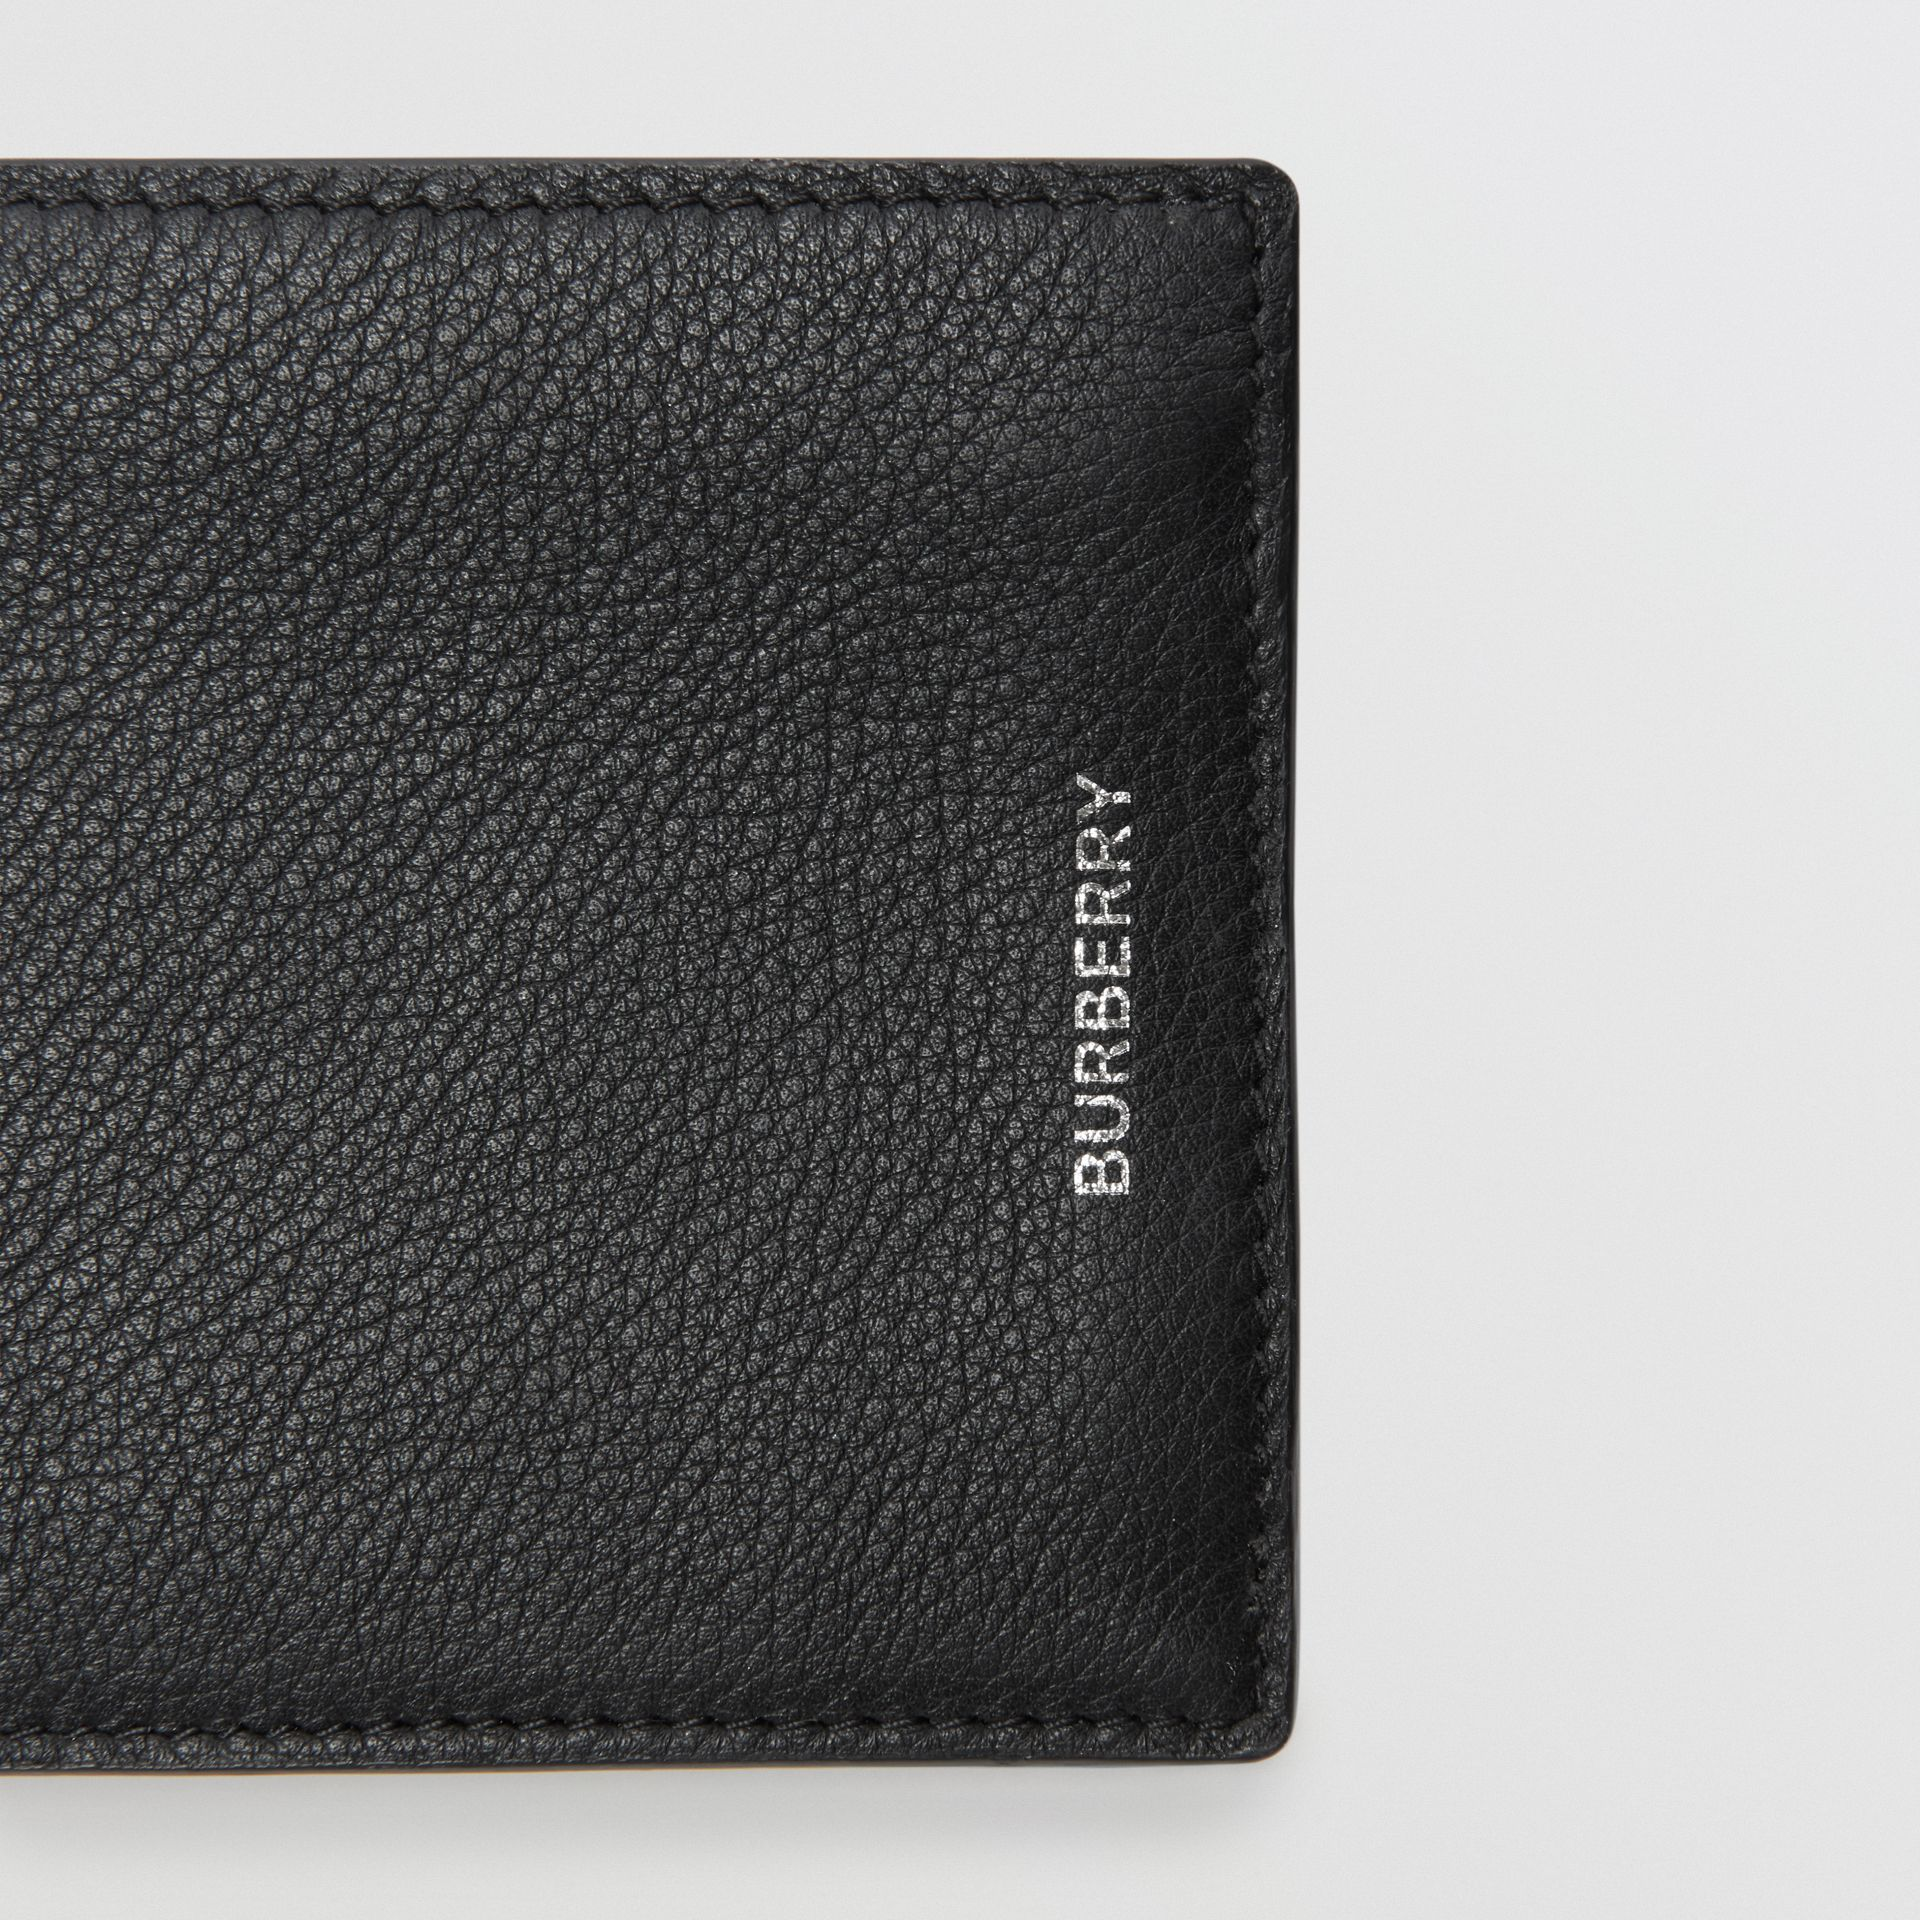 Grainy Leather International Bifold Wallet in Black - Men | Burberry United Kingdom - gallery image 1